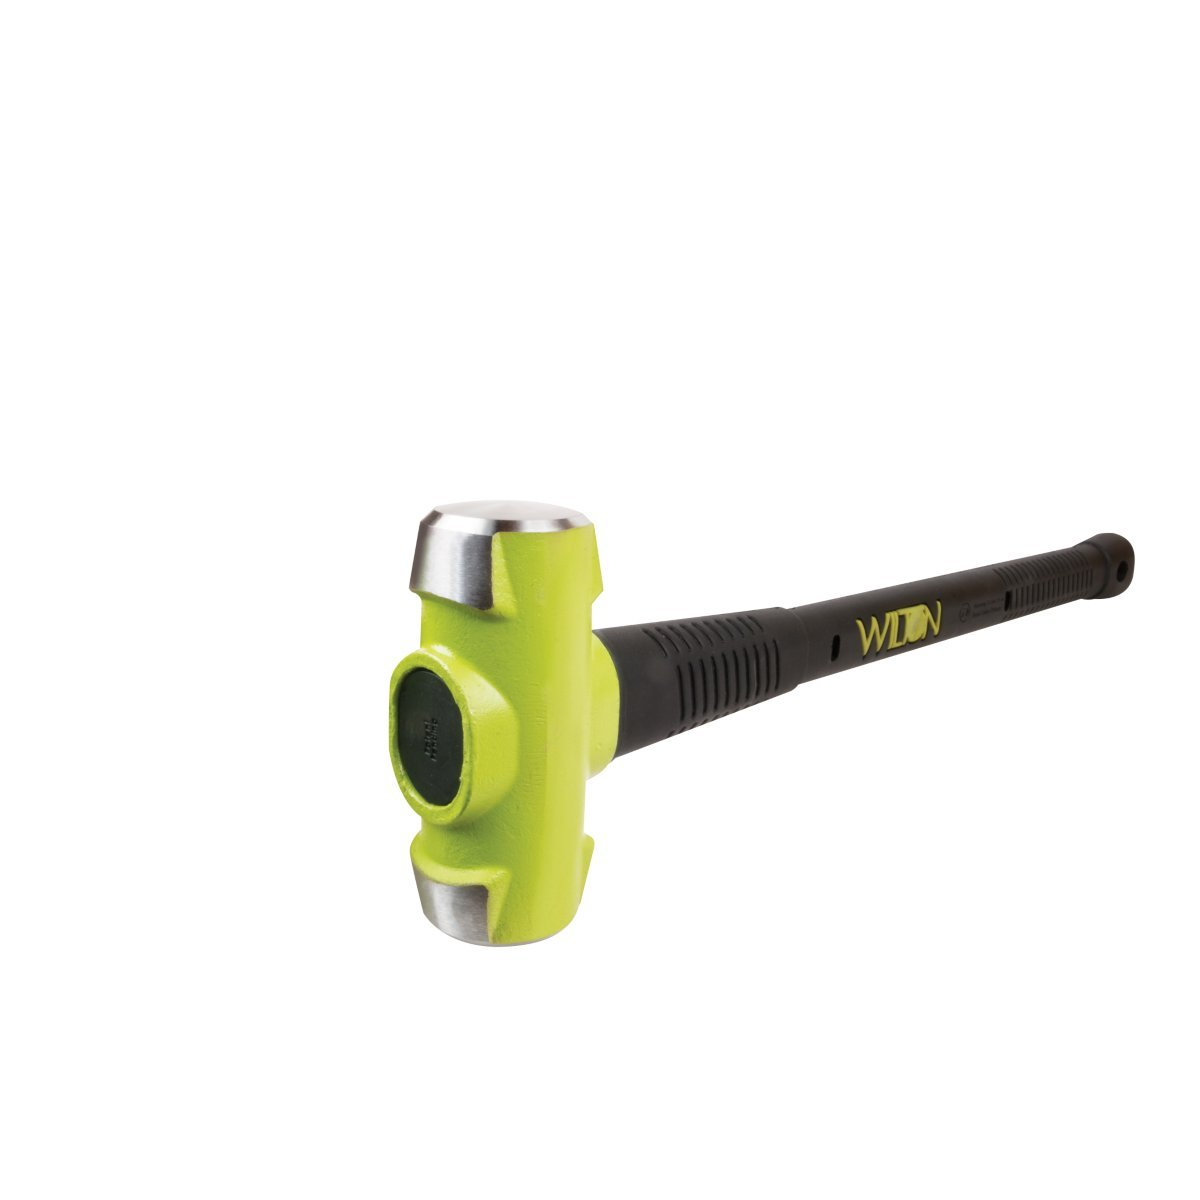 Wilton 21236 12 lb. BASH Sledge Hammer with 36-in Unbreakable Handle by Wilton